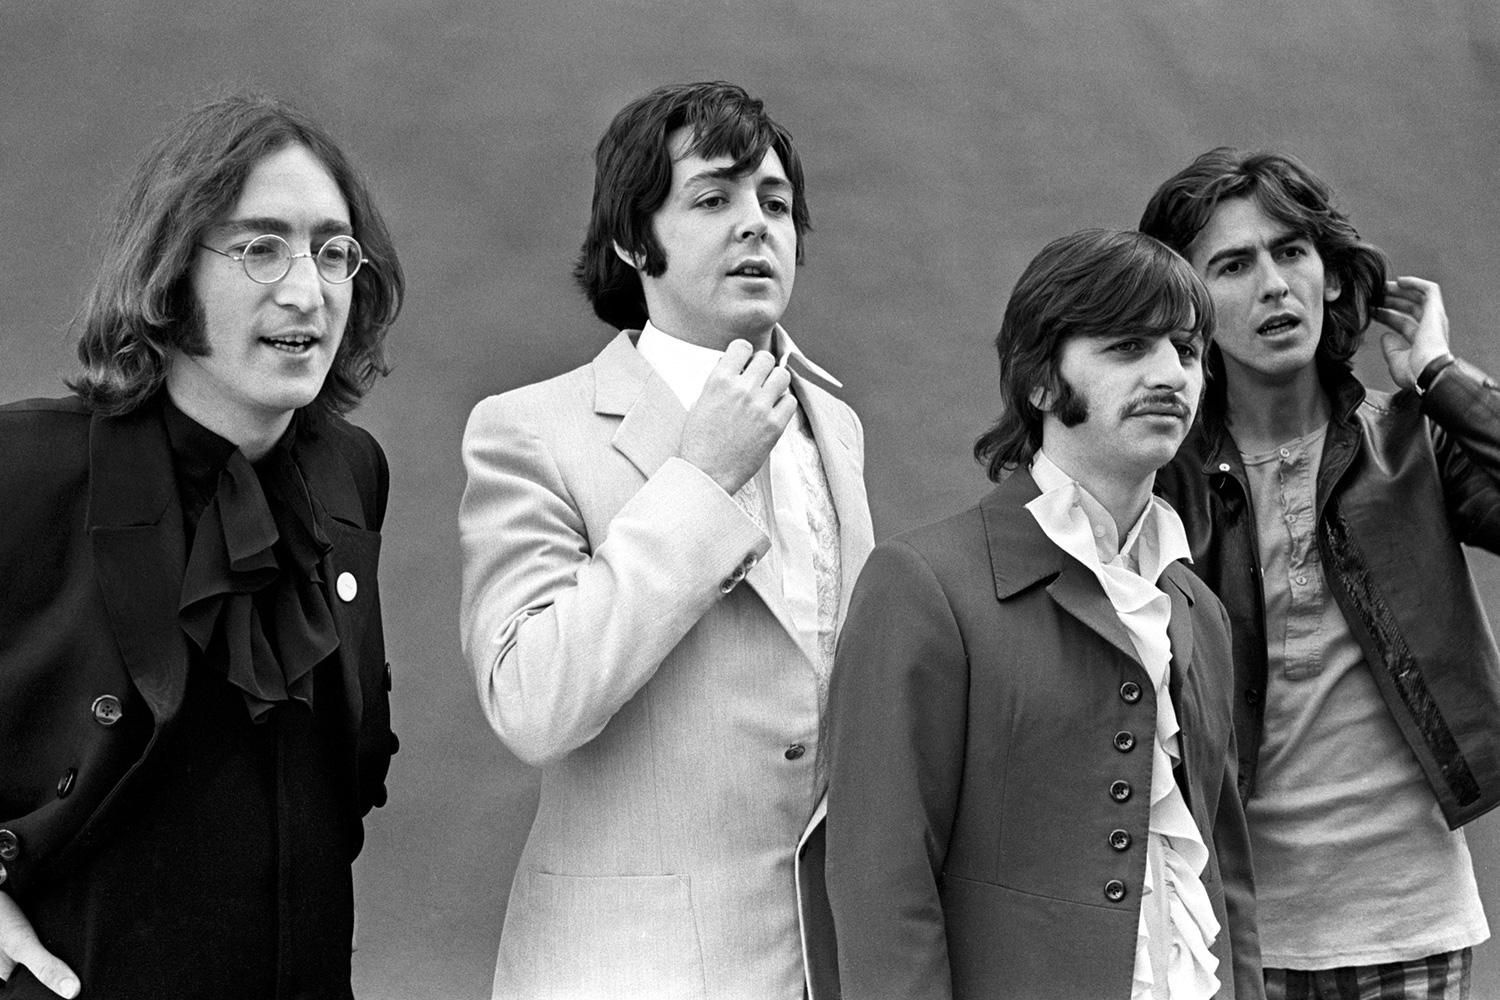 BEATLES-IN-MONO-The-Beatles-Thomson-House-London-Jul-28-1968-©-Apple-Corps-Ltd-copy